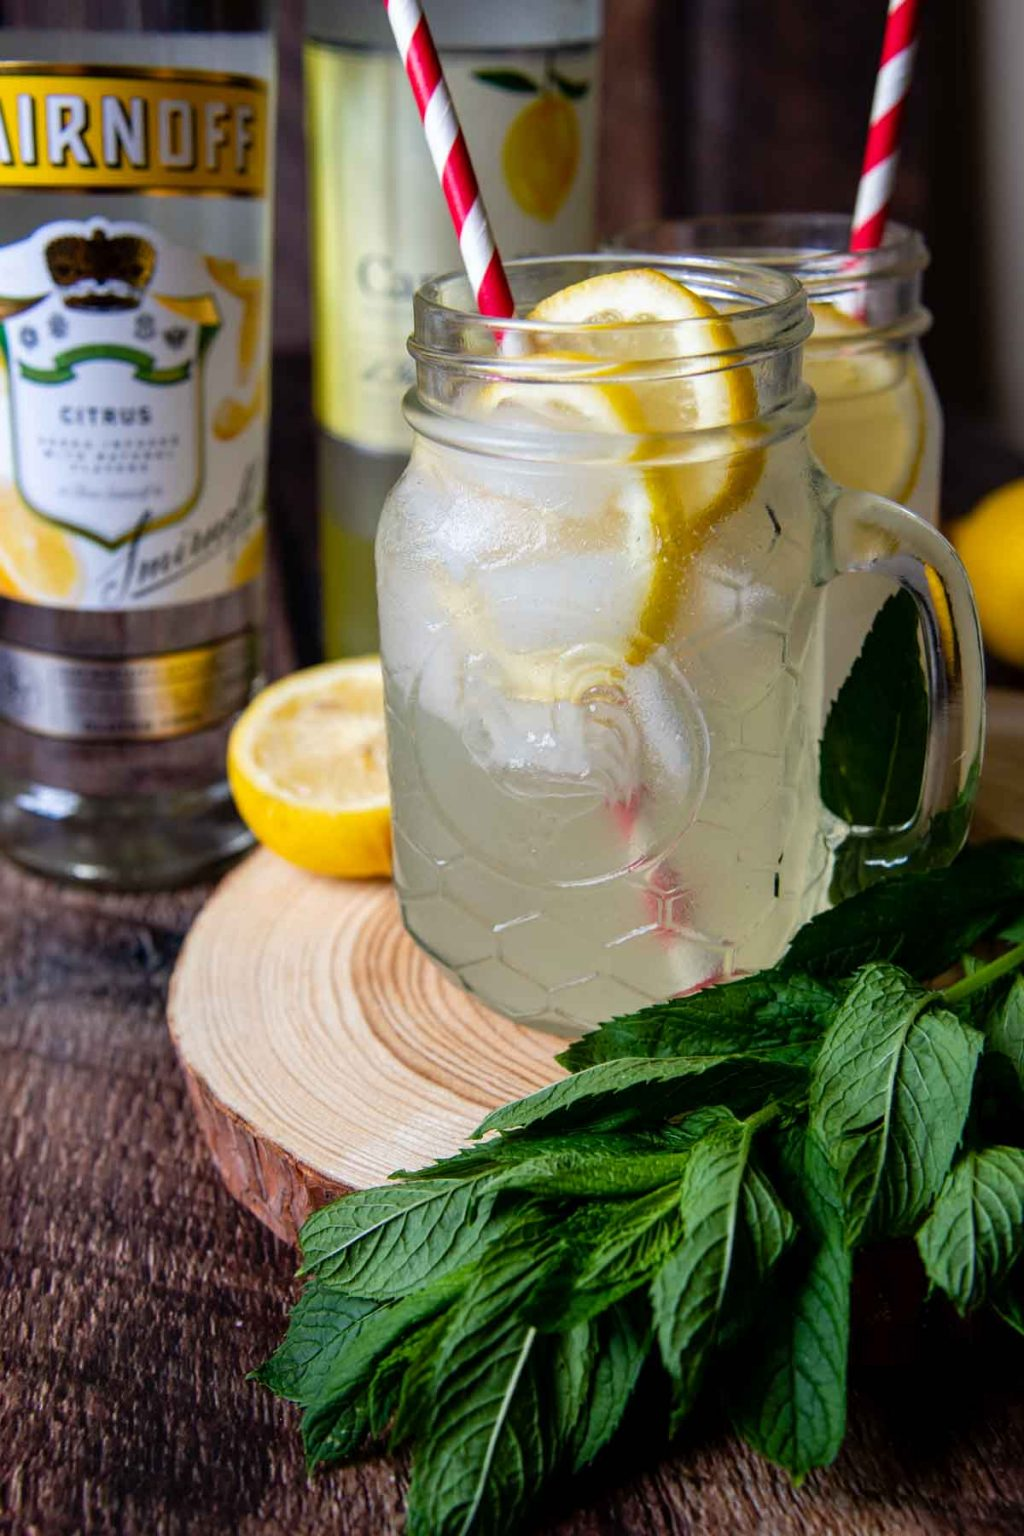 two lemon shake-ups with citrus vodka and limoncello in the background